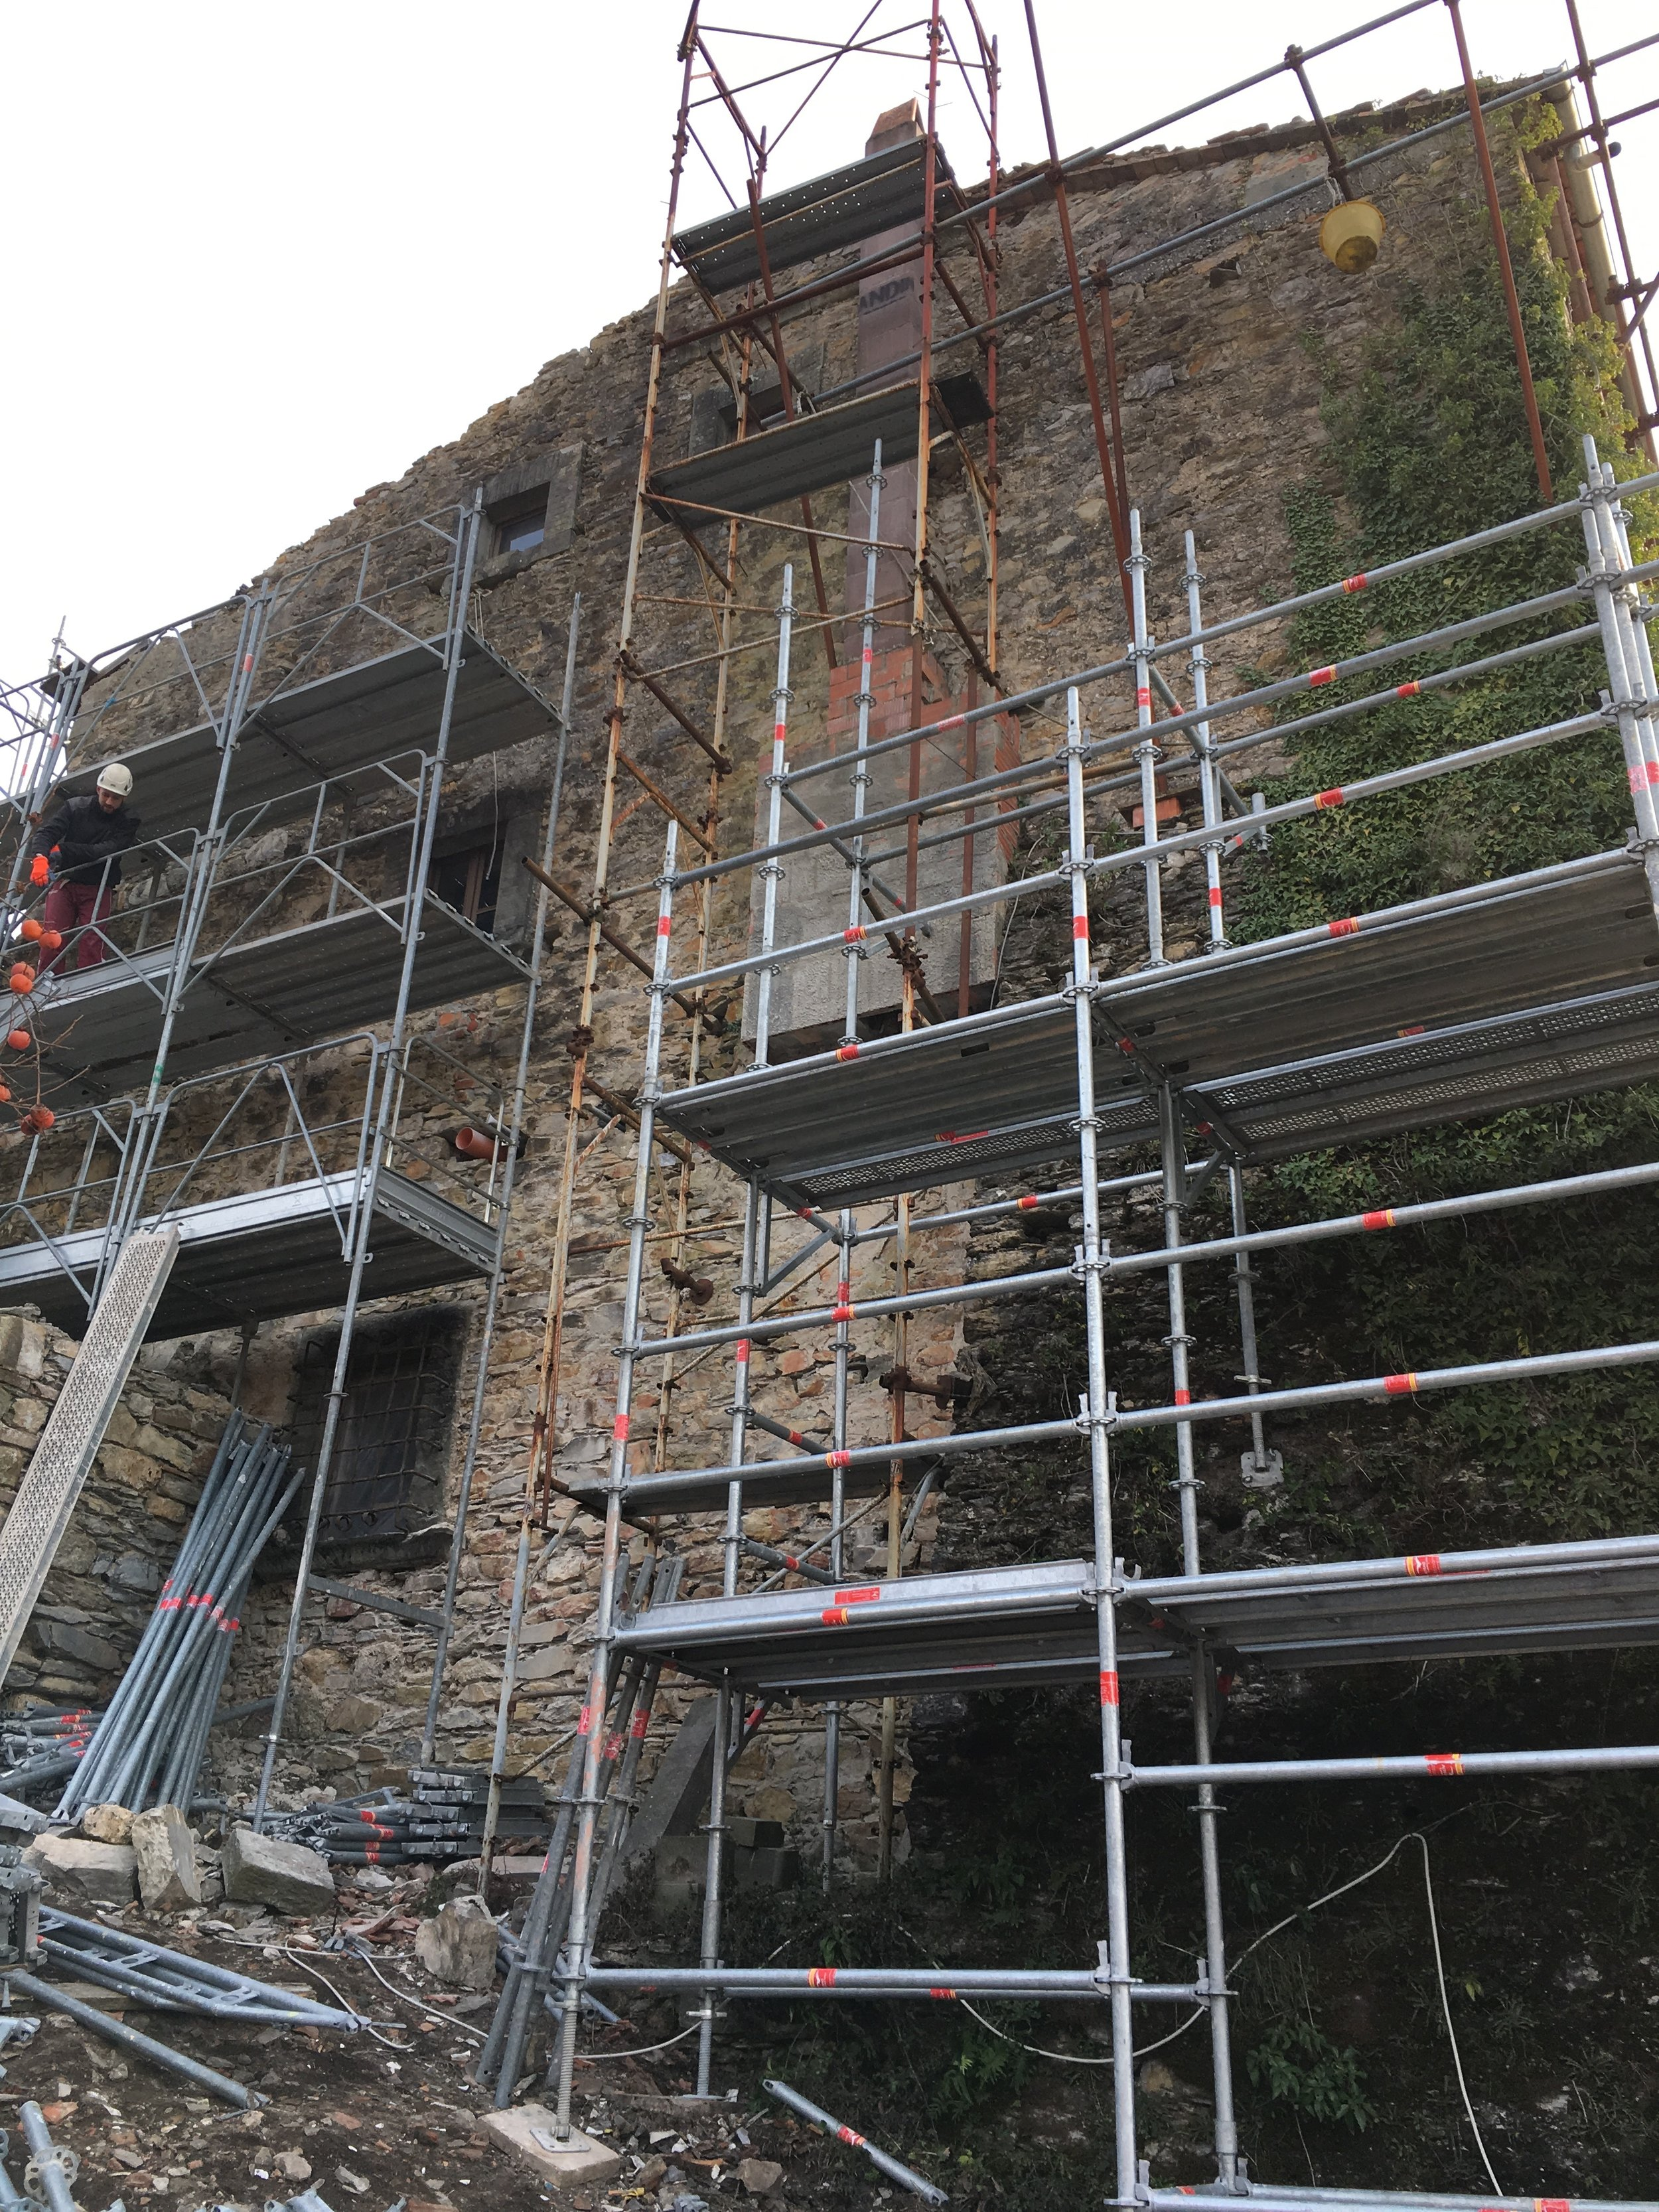 3 floors of scaffolding to scale the Fortress…